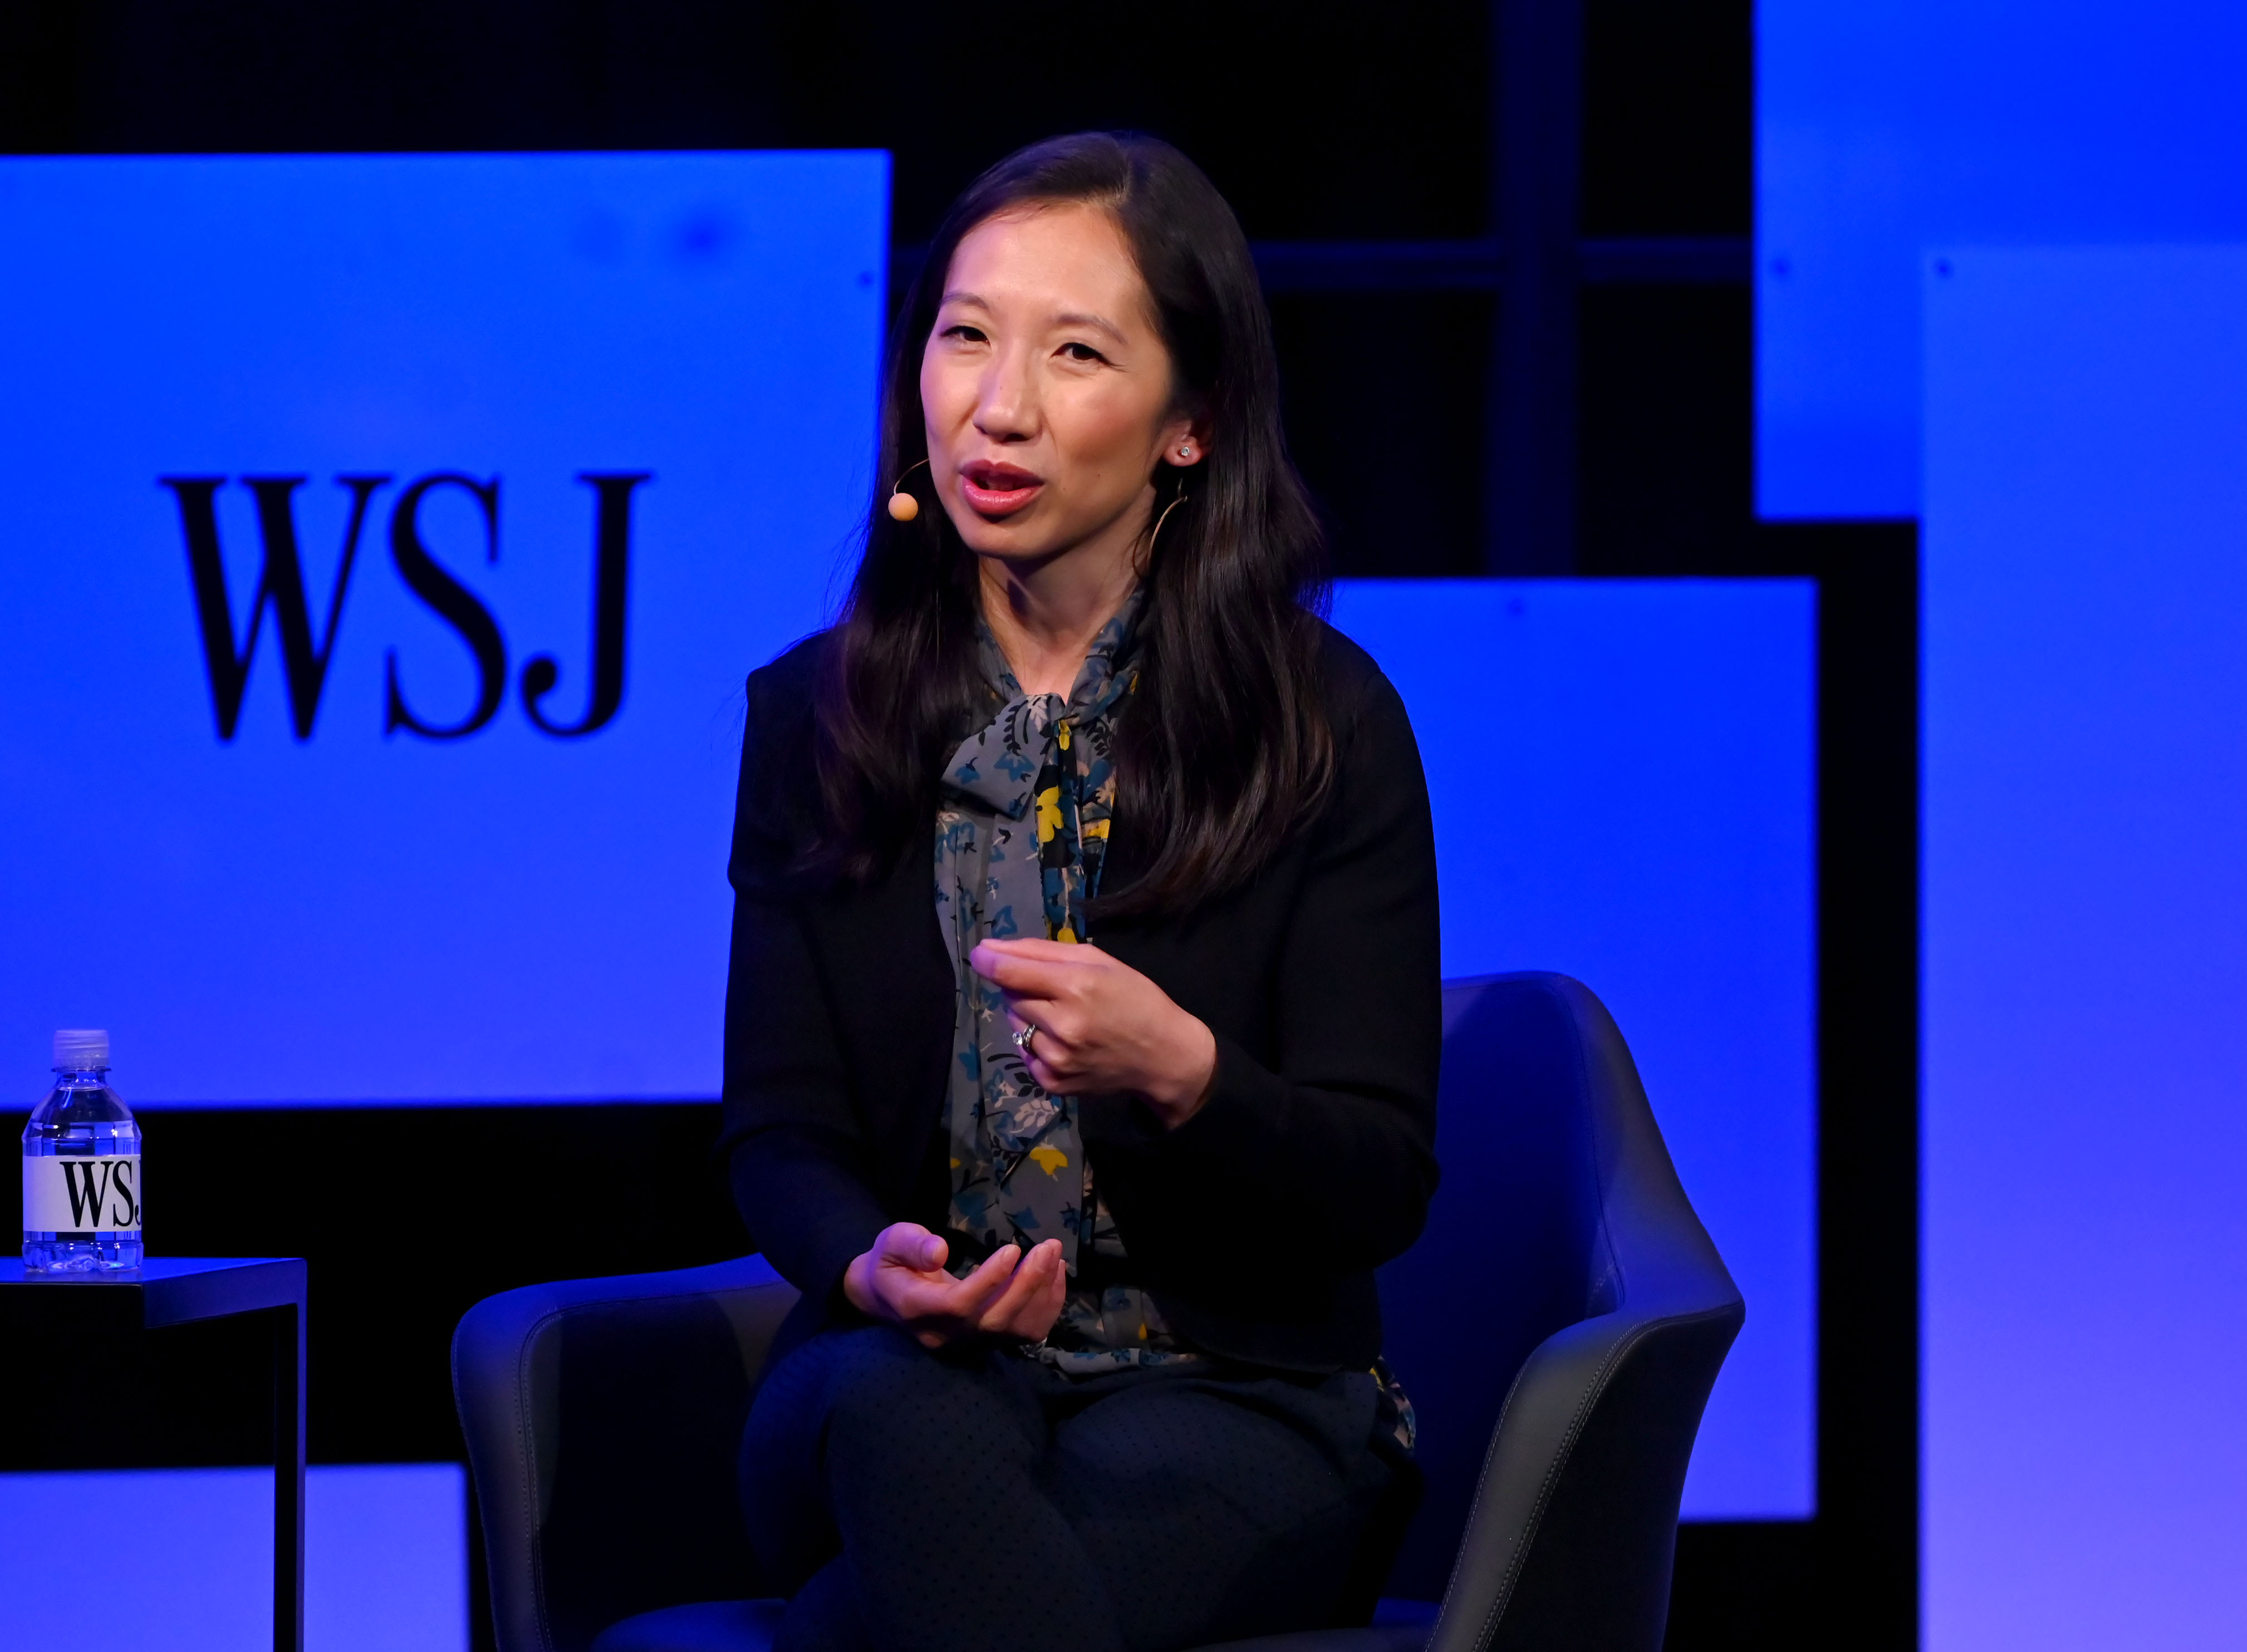 NEW YORK, NEW YORK - MAY 20: Leana Wen, President and CEO of Planned Parenthood speaks during The Wall Street Journal's Future Of Everything Festival at Spring Studios on May 20, 2019 in New York City. (Photo by Nicholas Hunt/Getty Images)